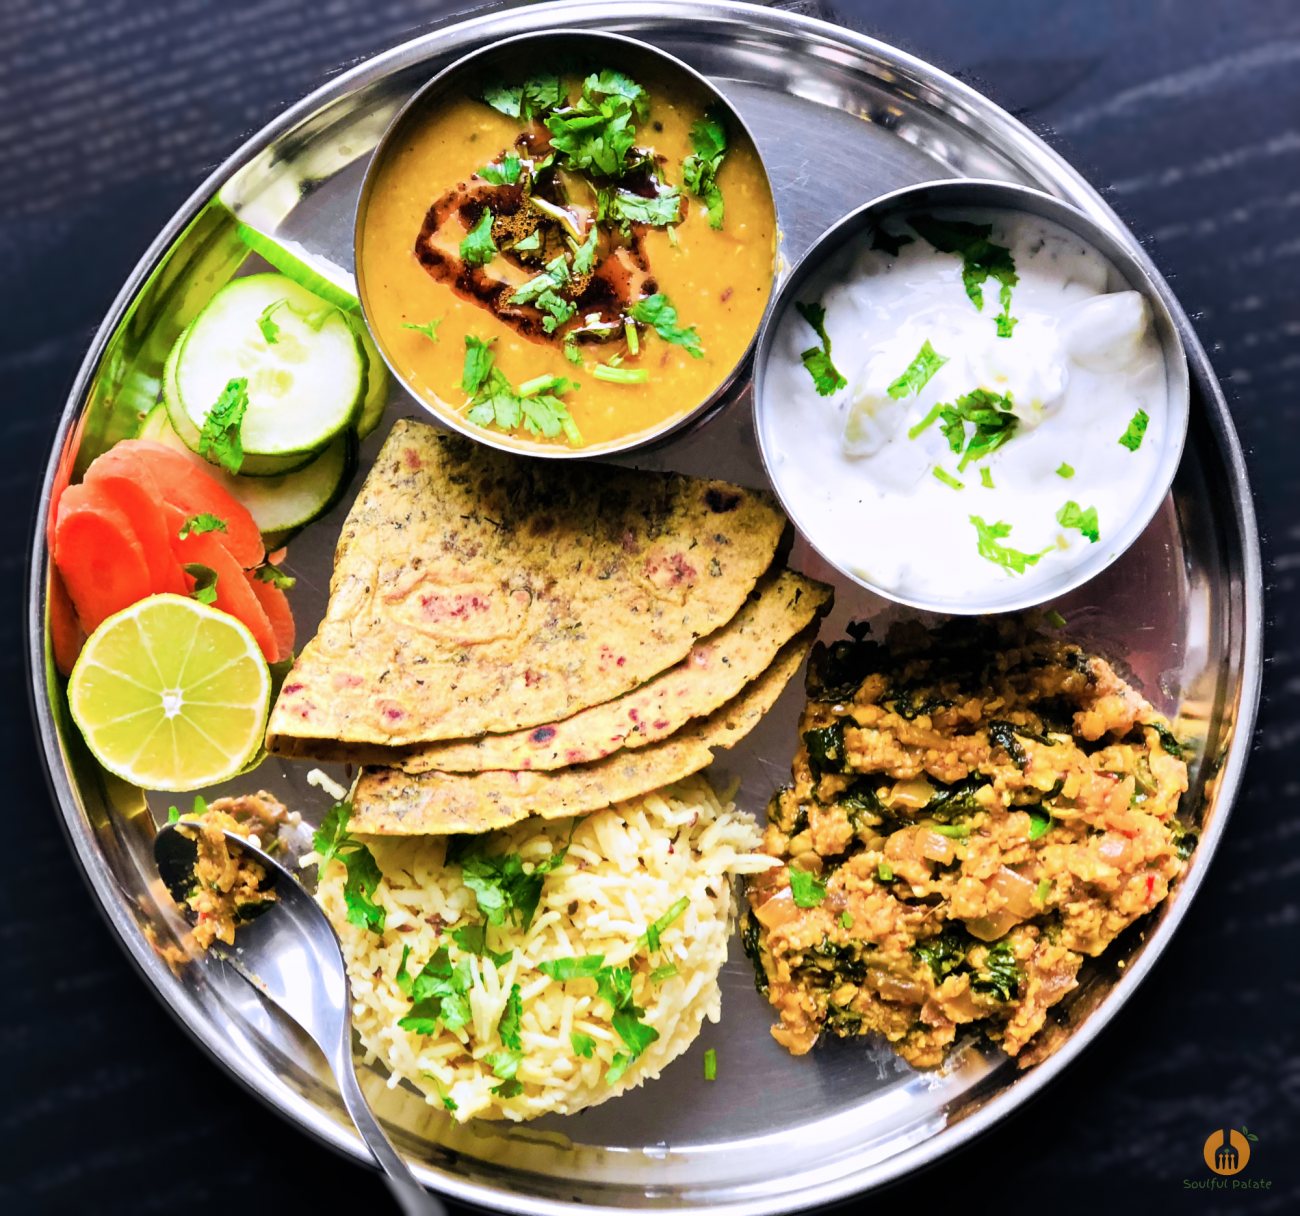 Indian Meals-A Complete Balanced Diet